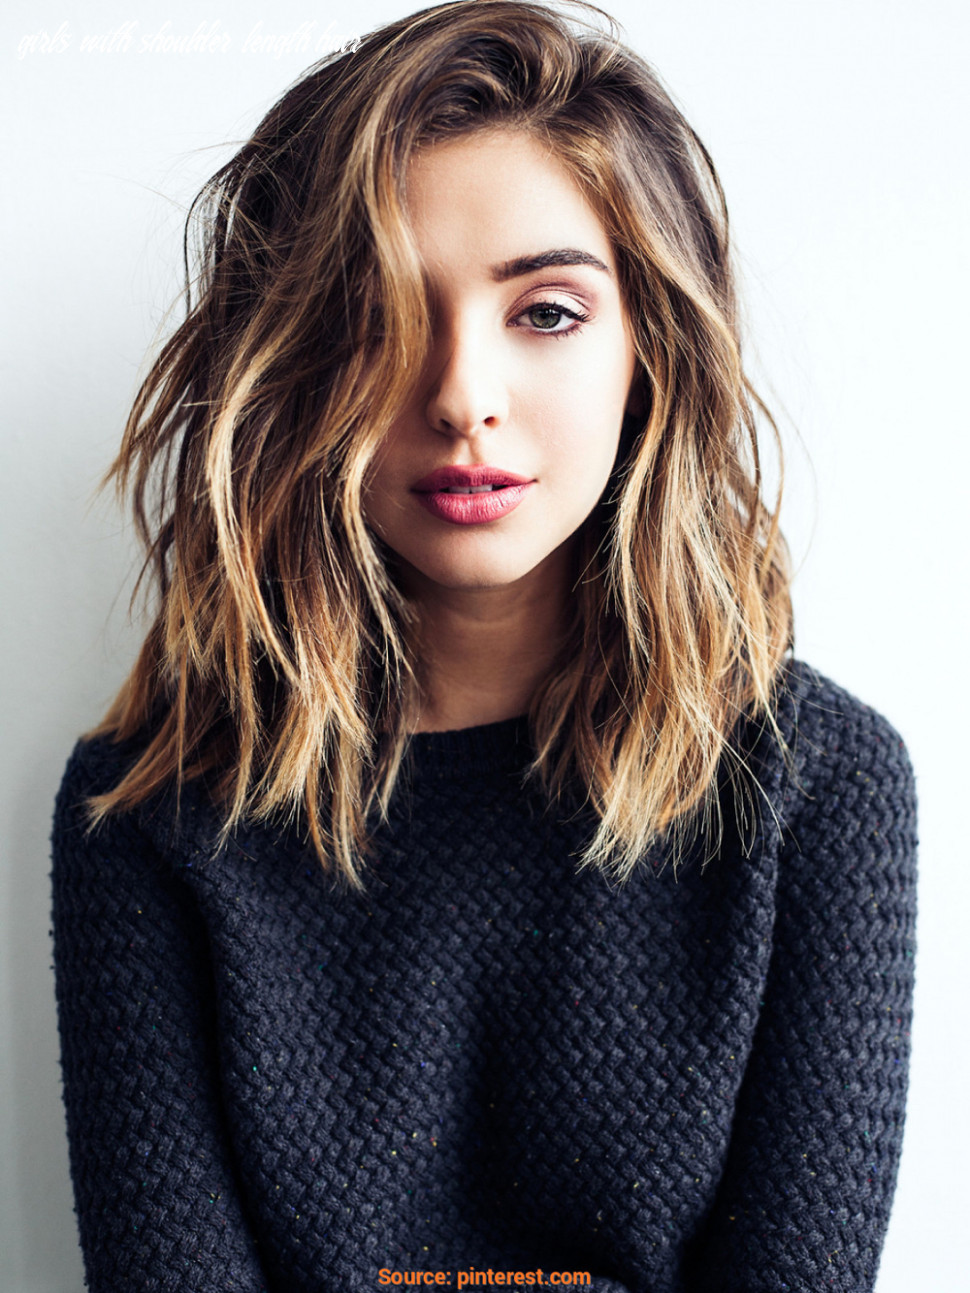 11 cute & easy hairstyles for shoulder length hair girls with shoulder length hair